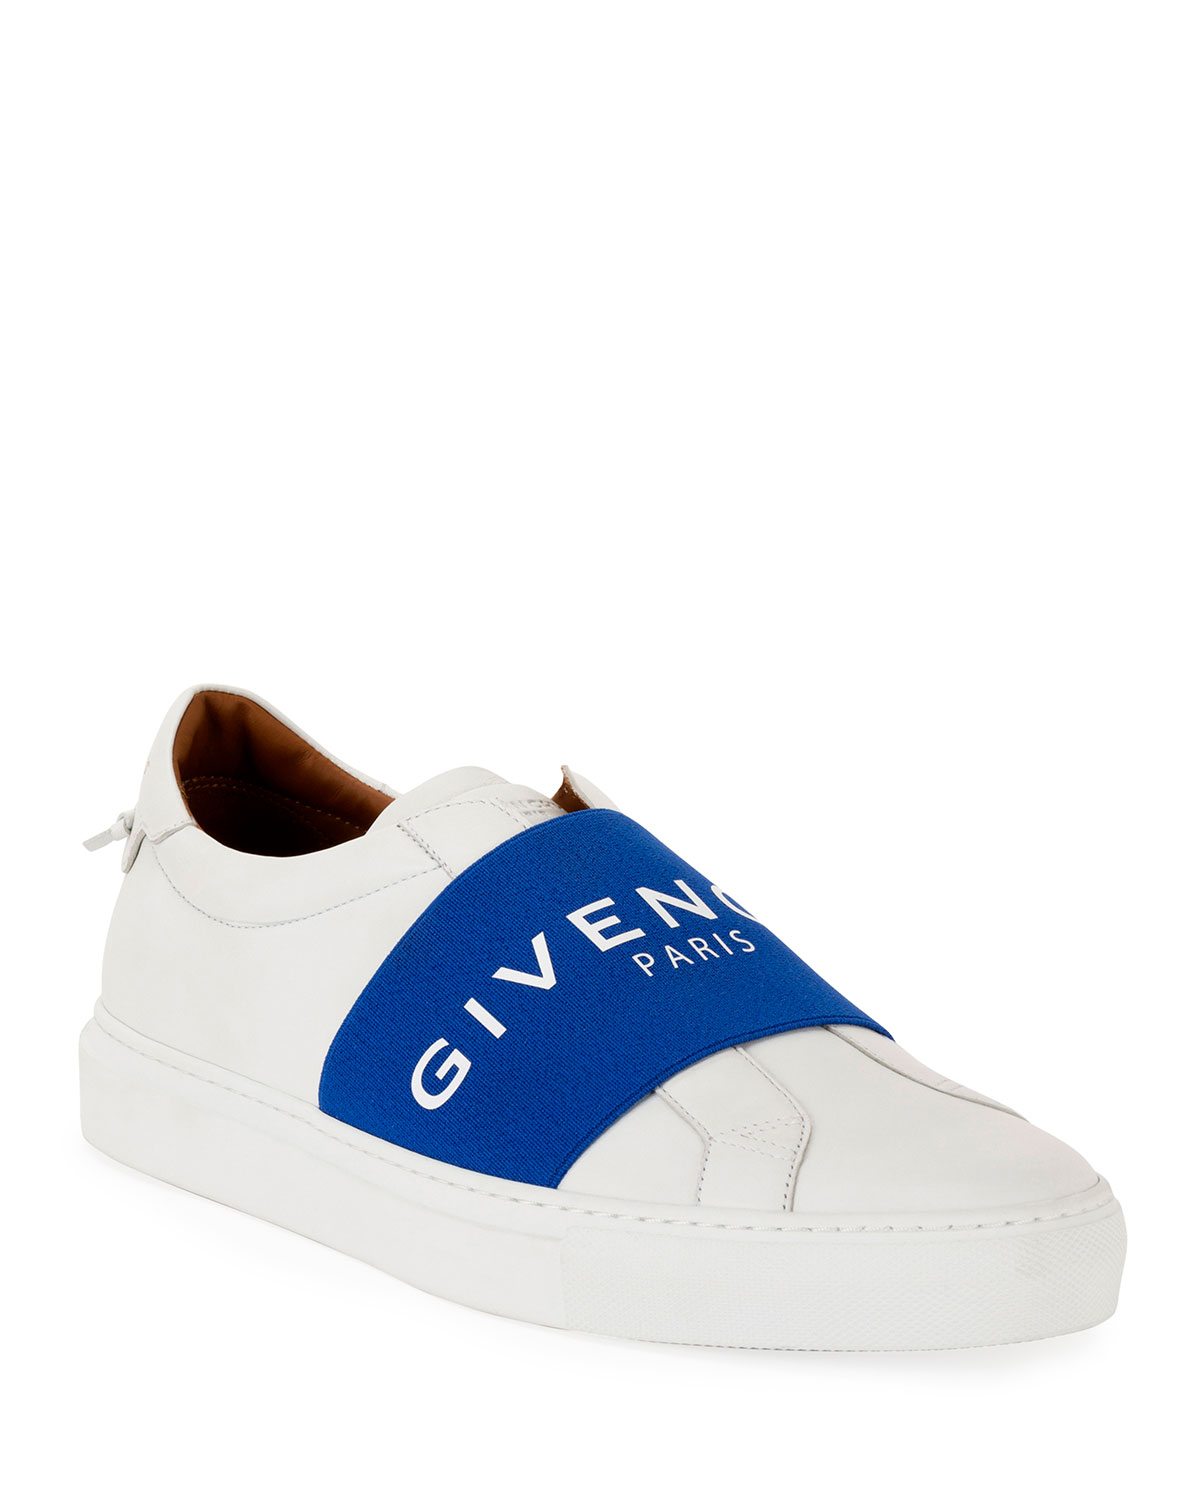 b60fa7ec6e1a Givenchy Men s Urban Street Elastic Slip-On Sneakers